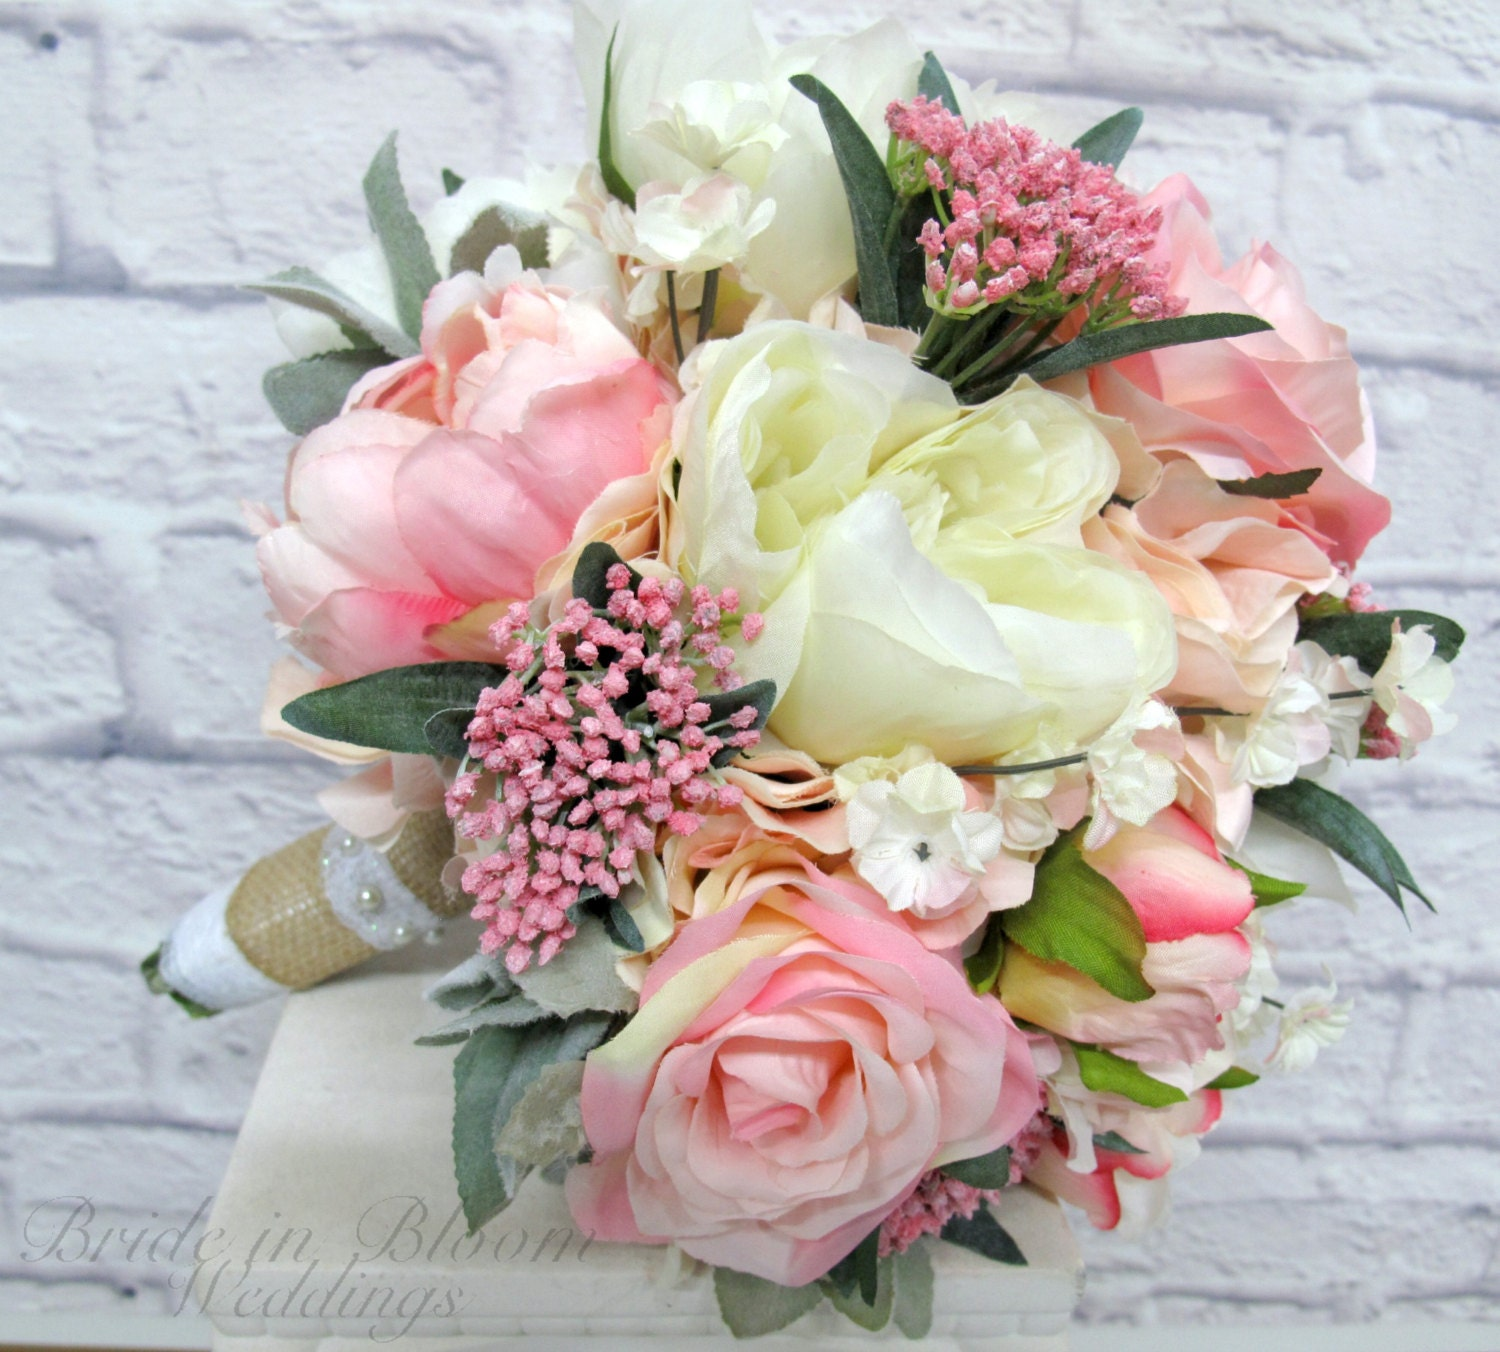 Wedding Bridal Flowers: Romantic Wedding Bouquet Pink Cream Peony Rose Bridal